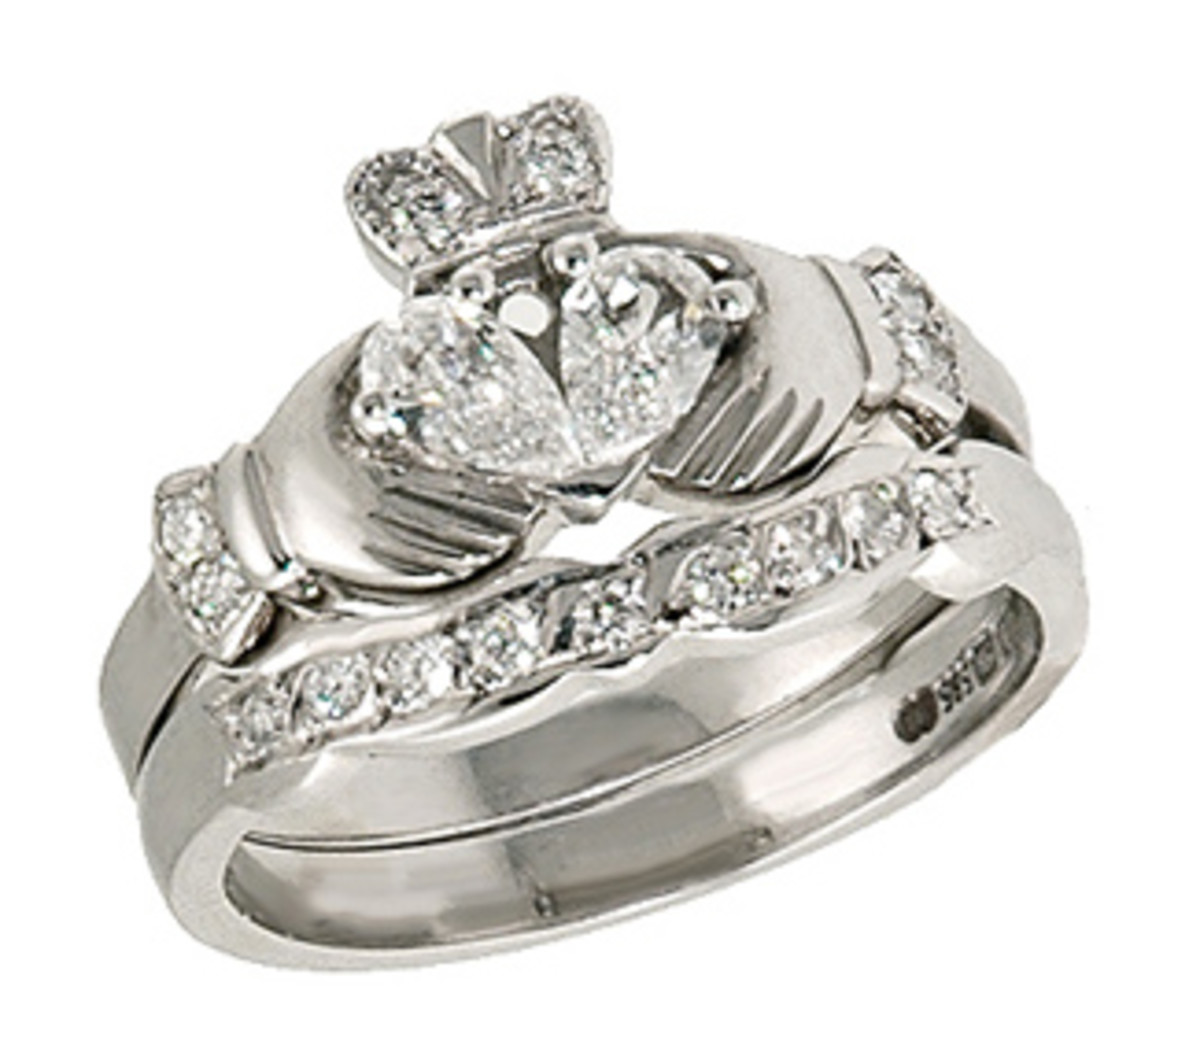 enement rings from around the world hubpages - Irish Wedding Ring Sets